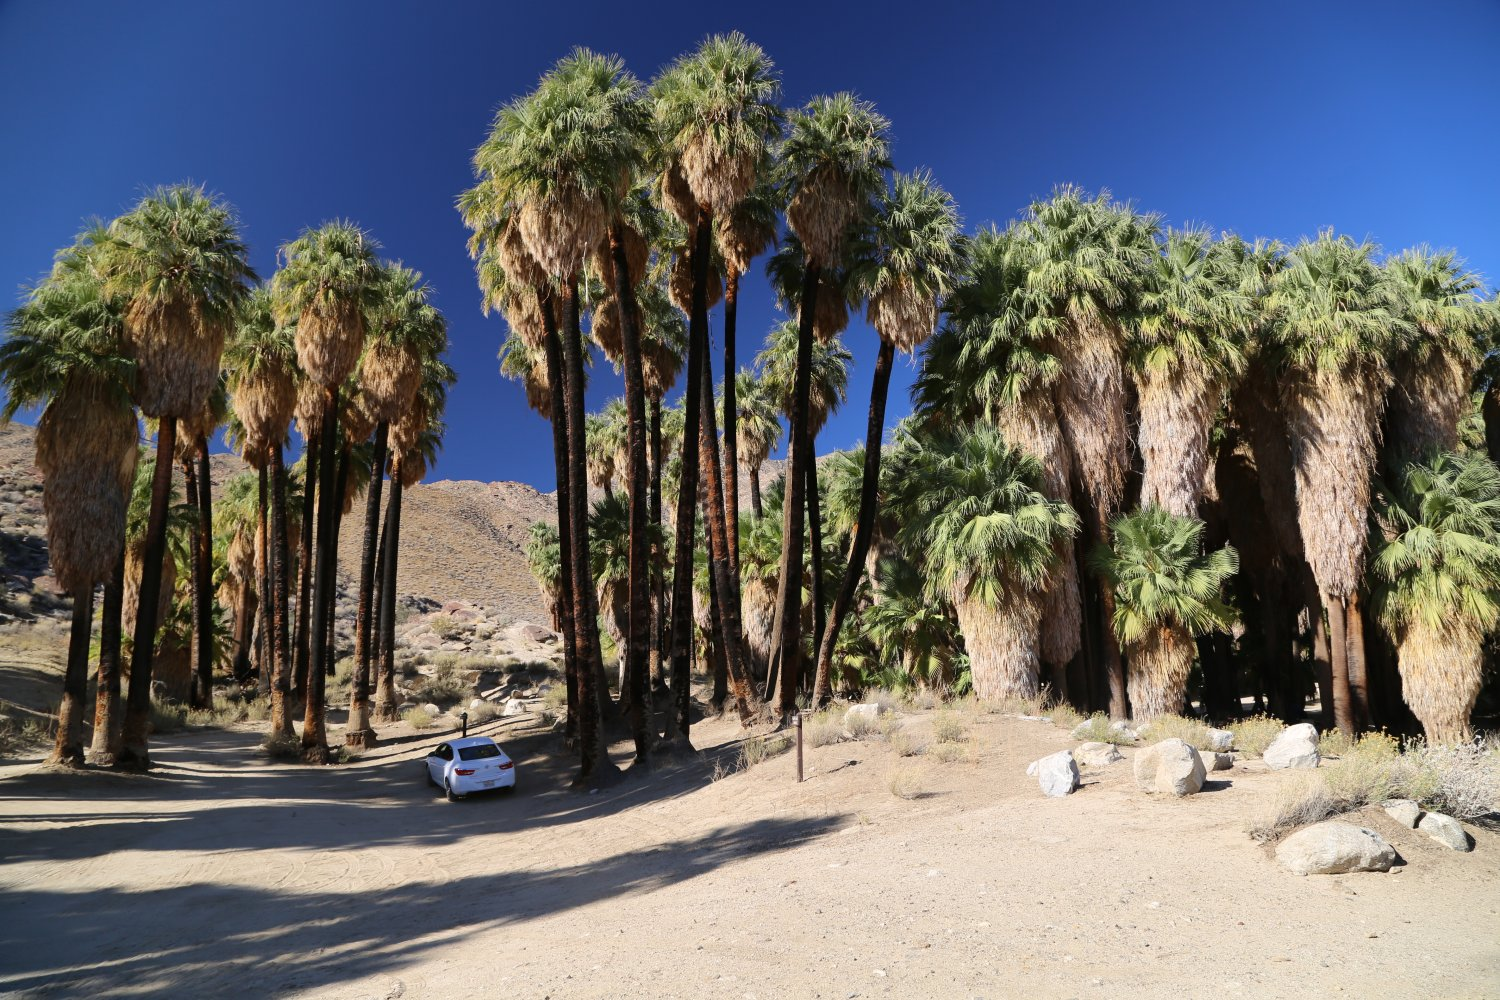 Revealed: The 10 Most Instagrammable Places in Palm Springs